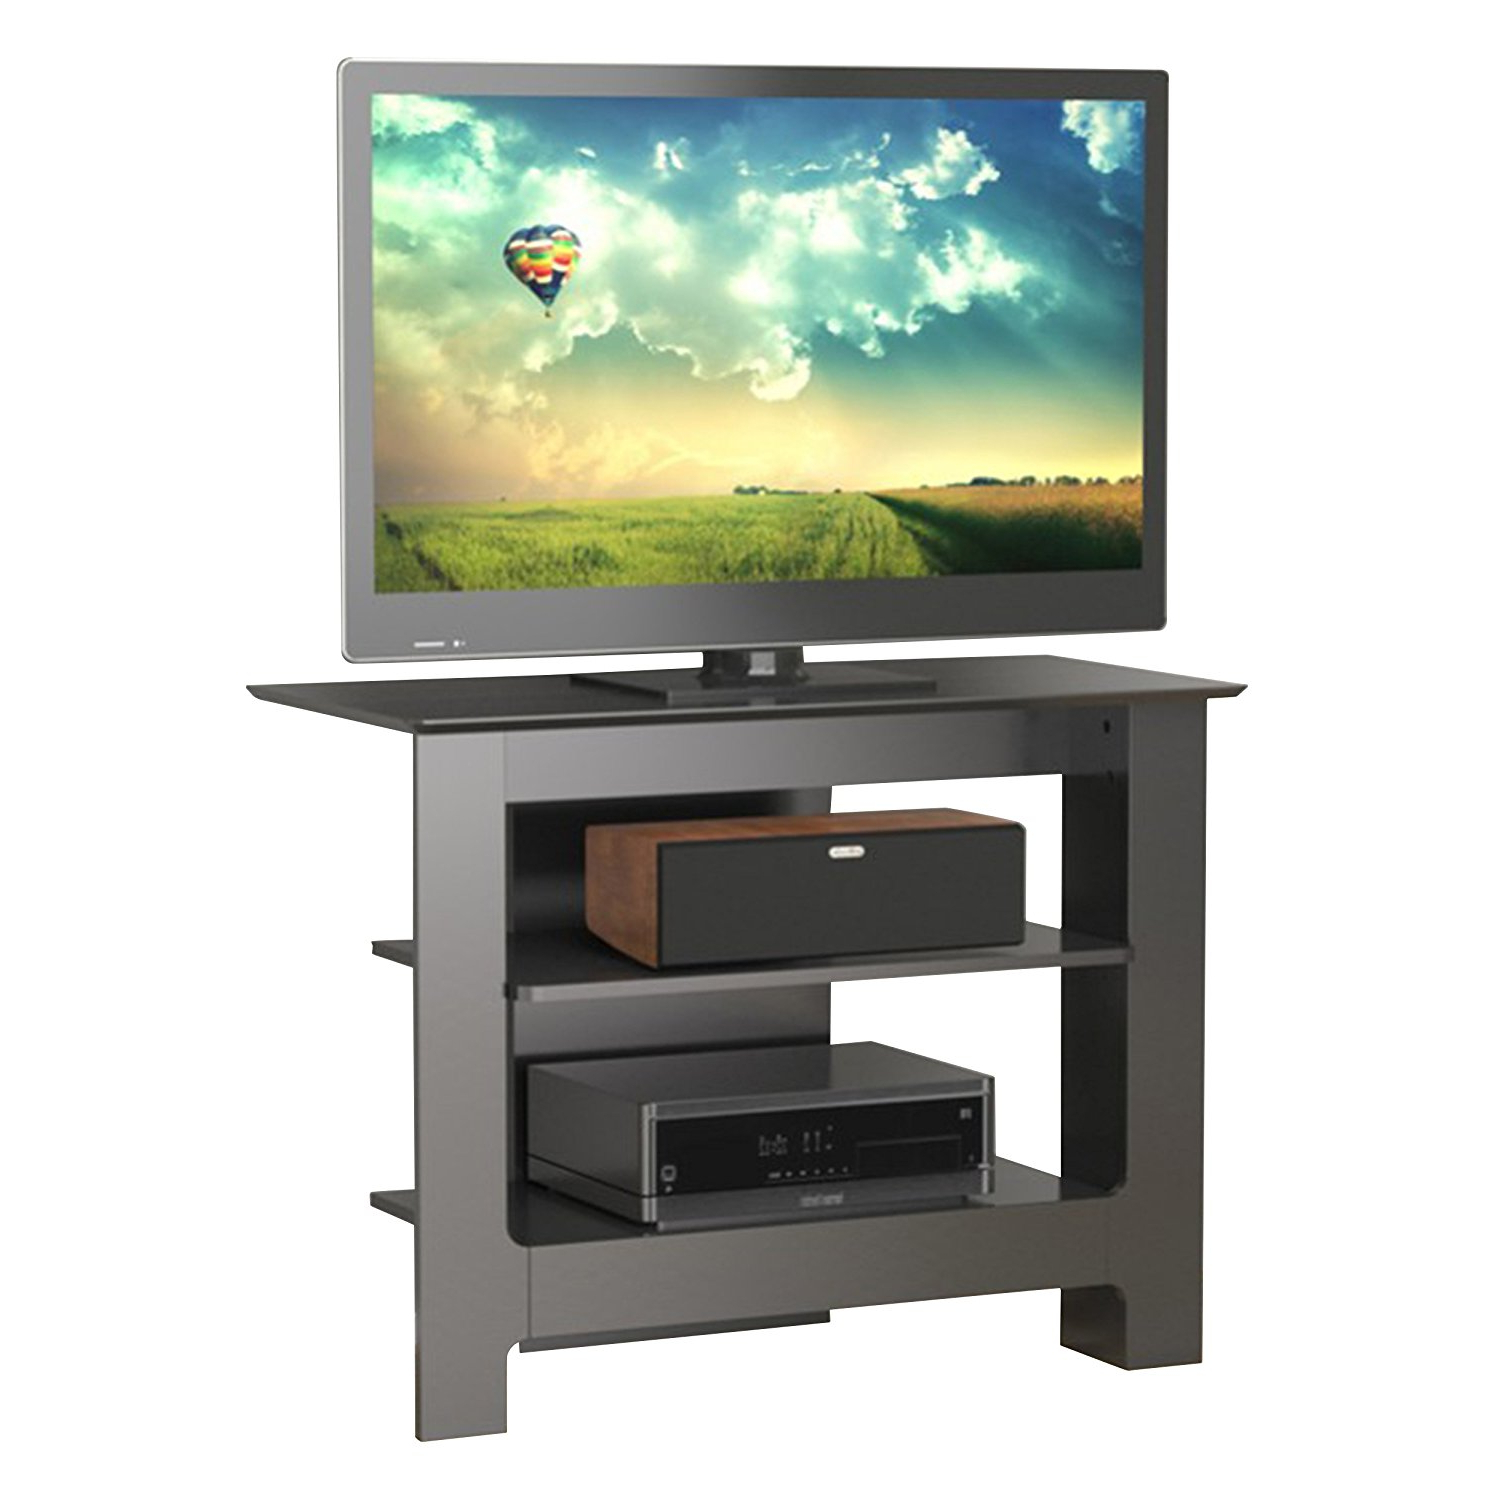 Favorite Cheap 40 Inch Corner Tv Stand, Find 40 Inch Corner Tv Stand Deals On Throughout 40 Inch Corner Tv Stands (View 5 of 20)